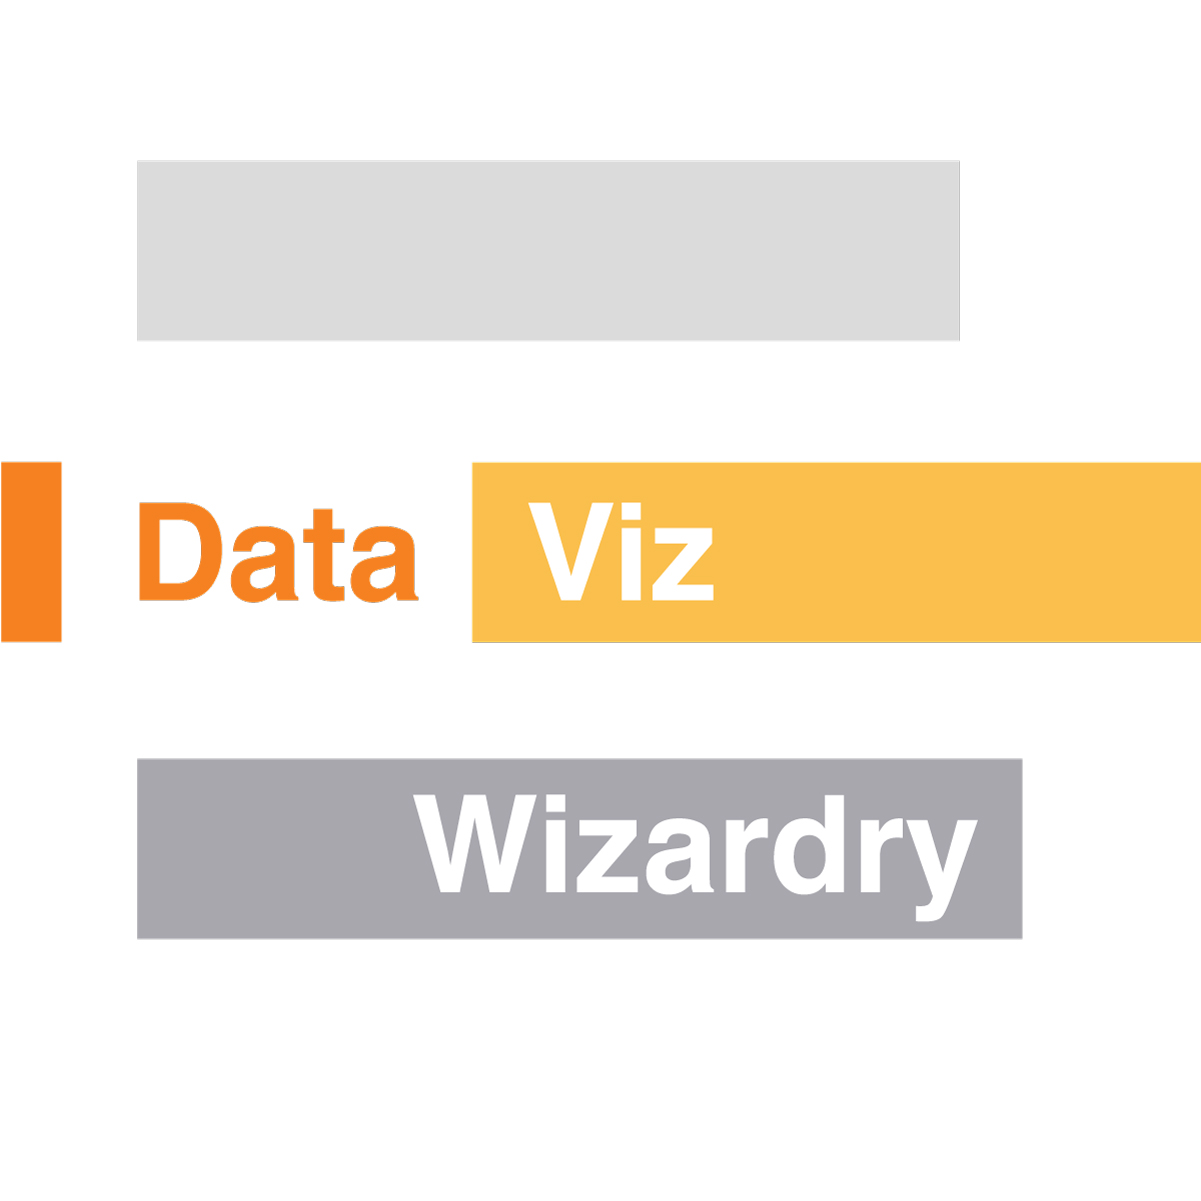 How to Be a Data Viz Wizard